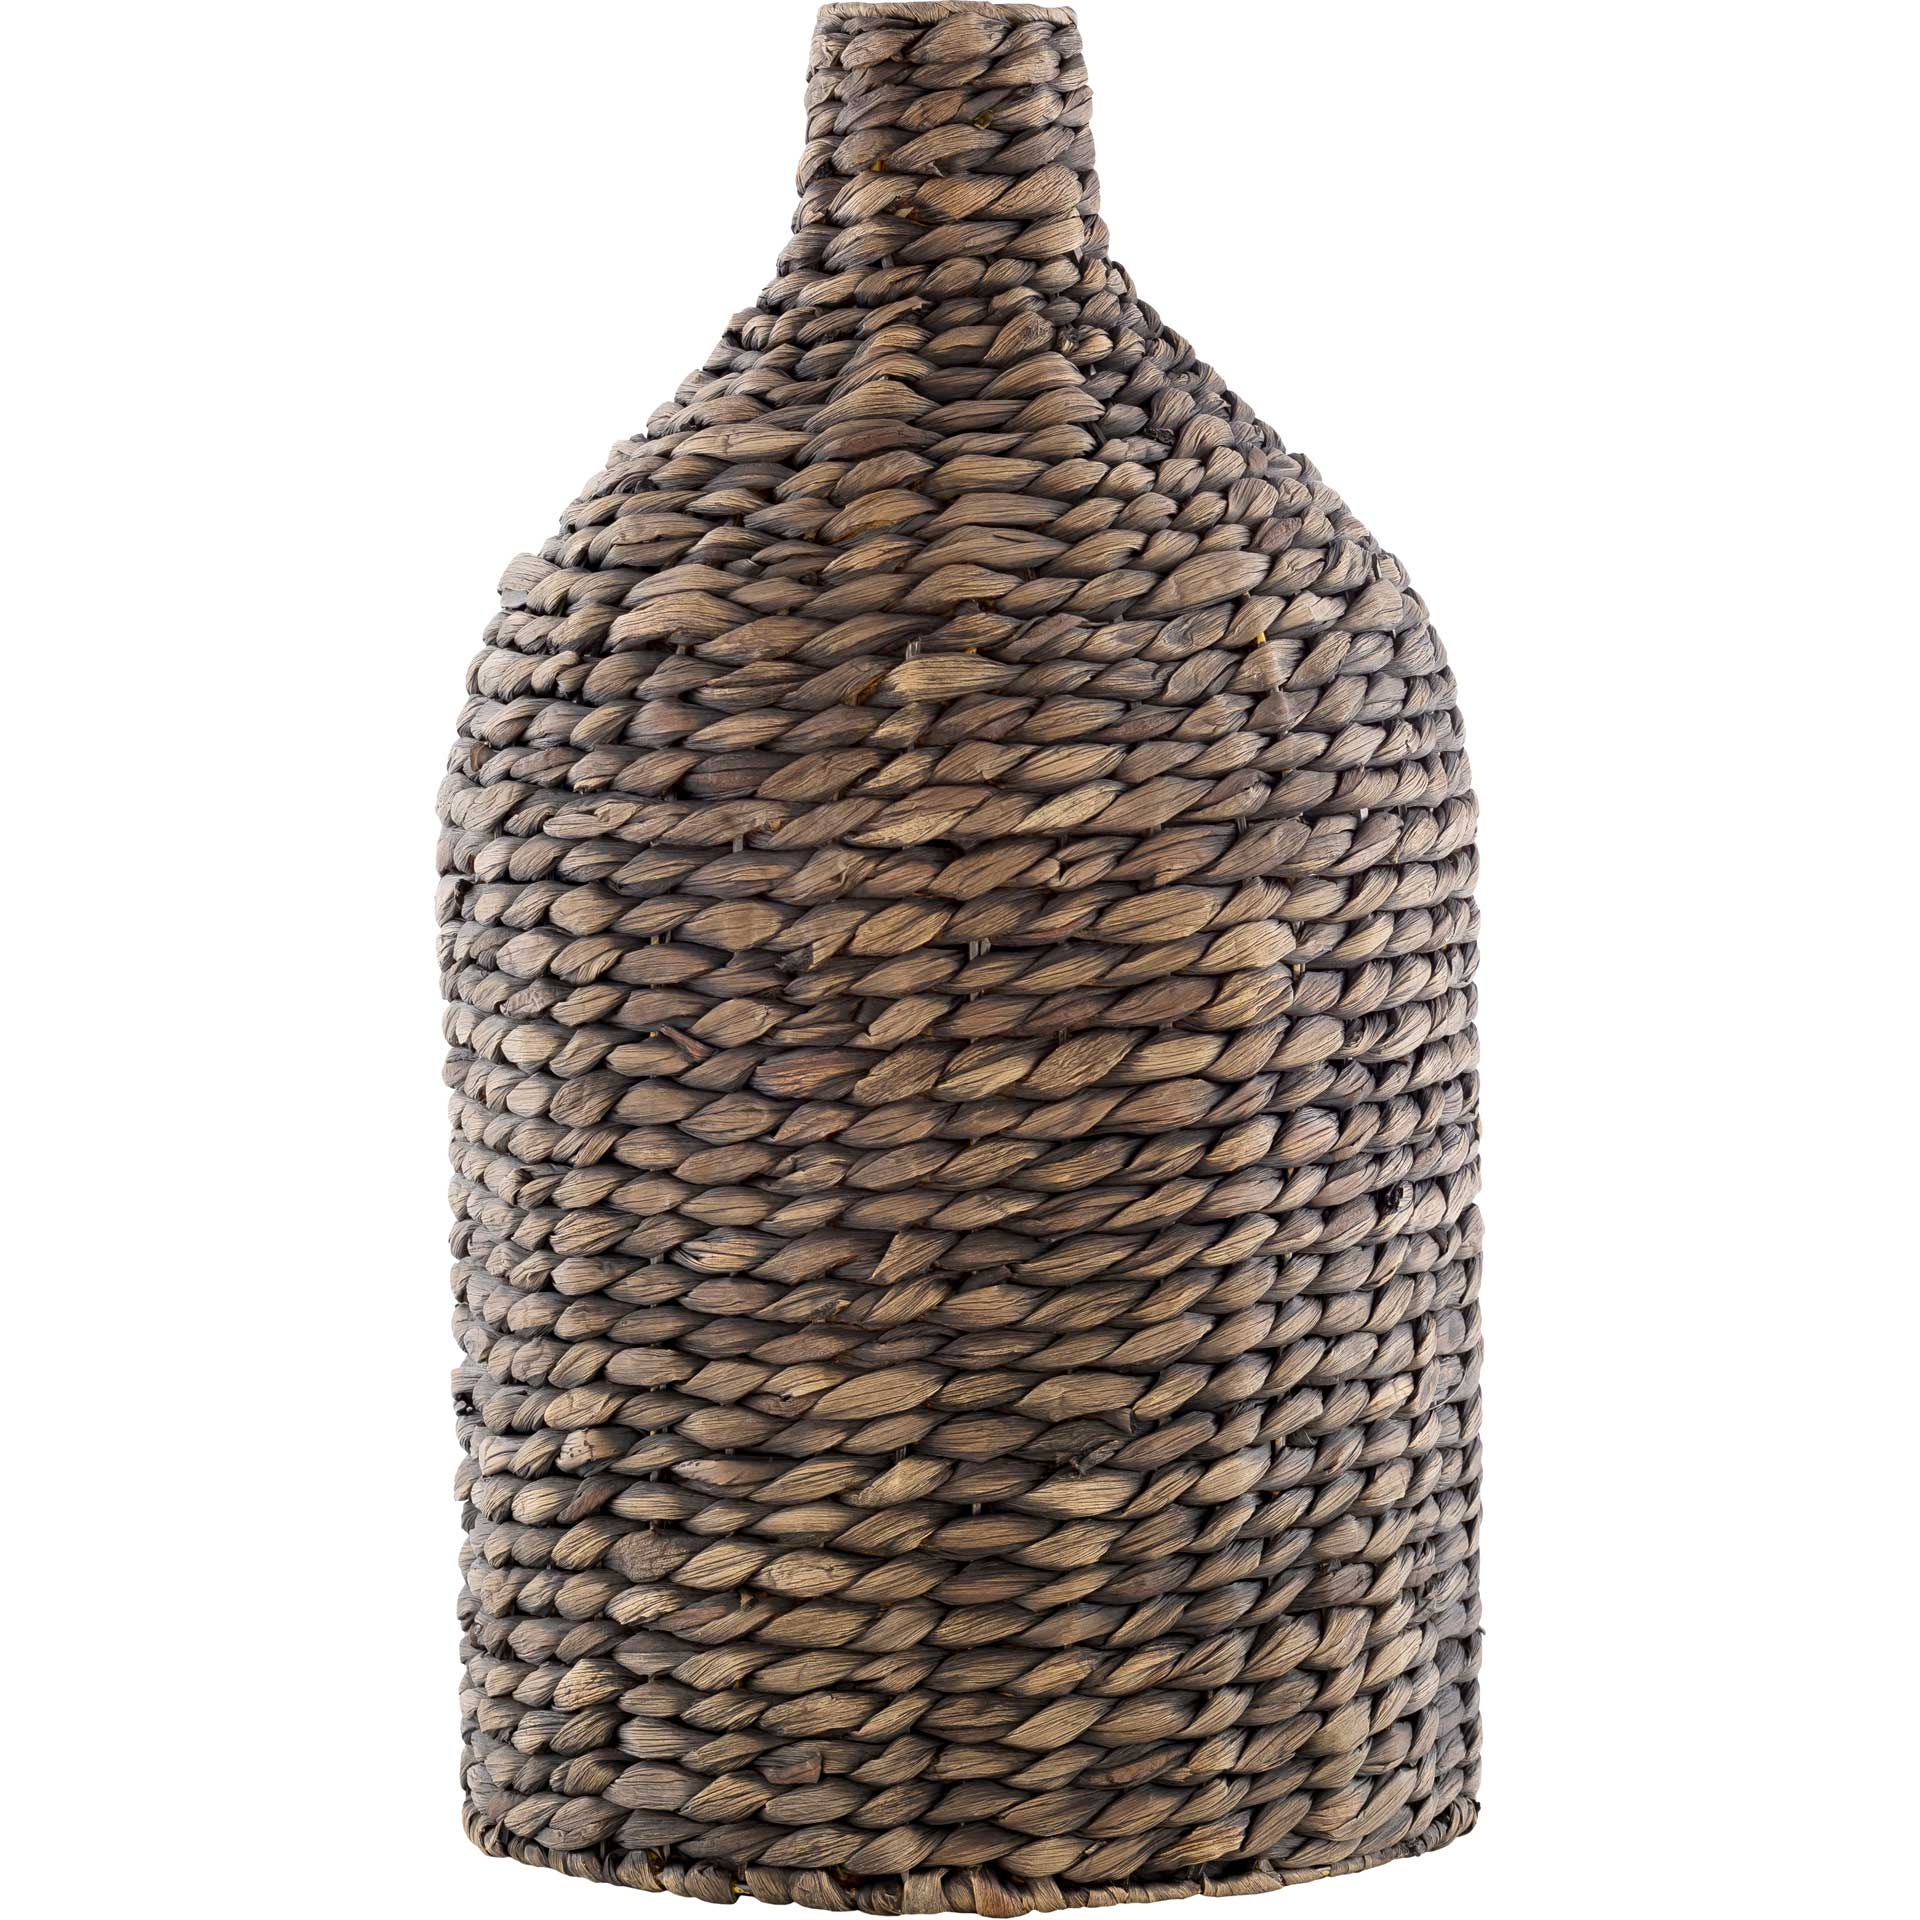 Emani Vase Brown Large